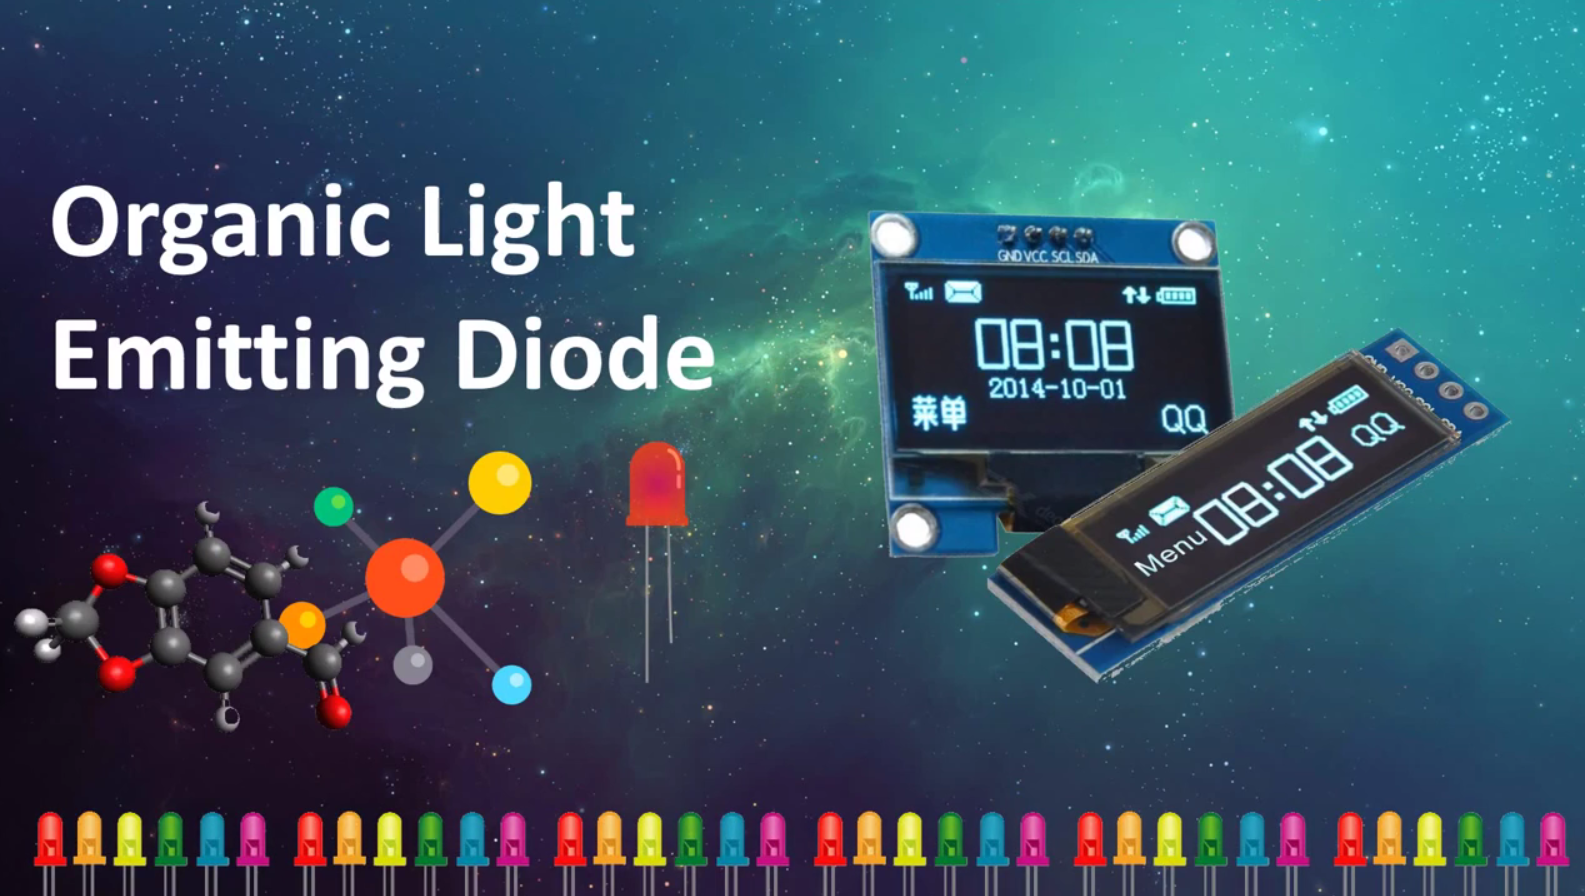 OLED I2C DISPLAY ARDUINO/NODEMCU TUTORIAL | Arduino | Maker Pro